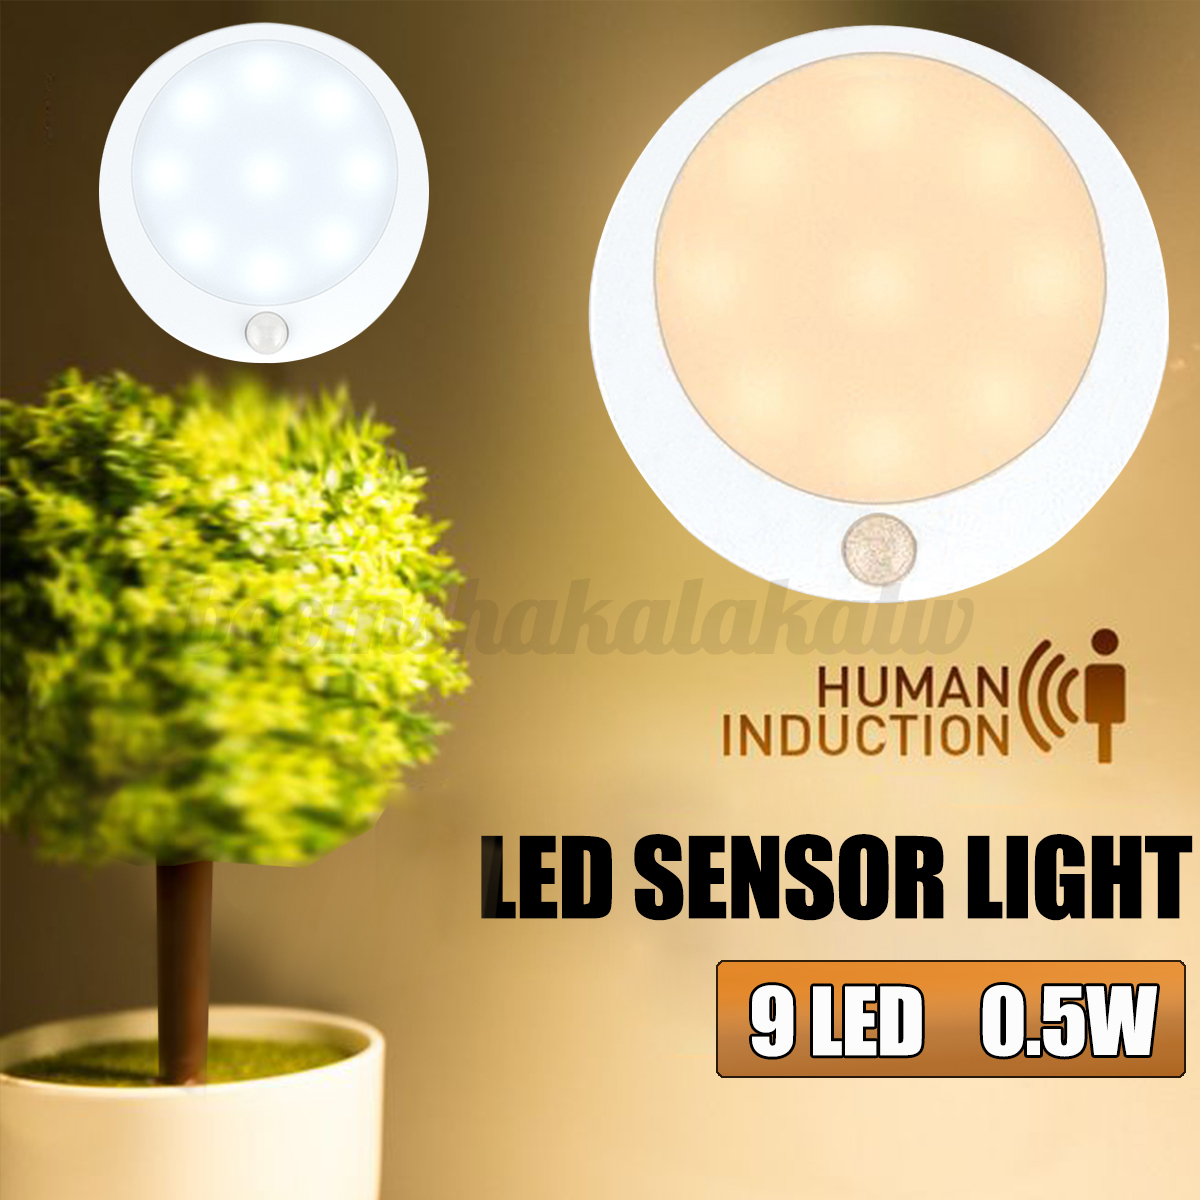 Wireless LED Light Night Human Infrared InductionLight Sense Corridor Wardrobe